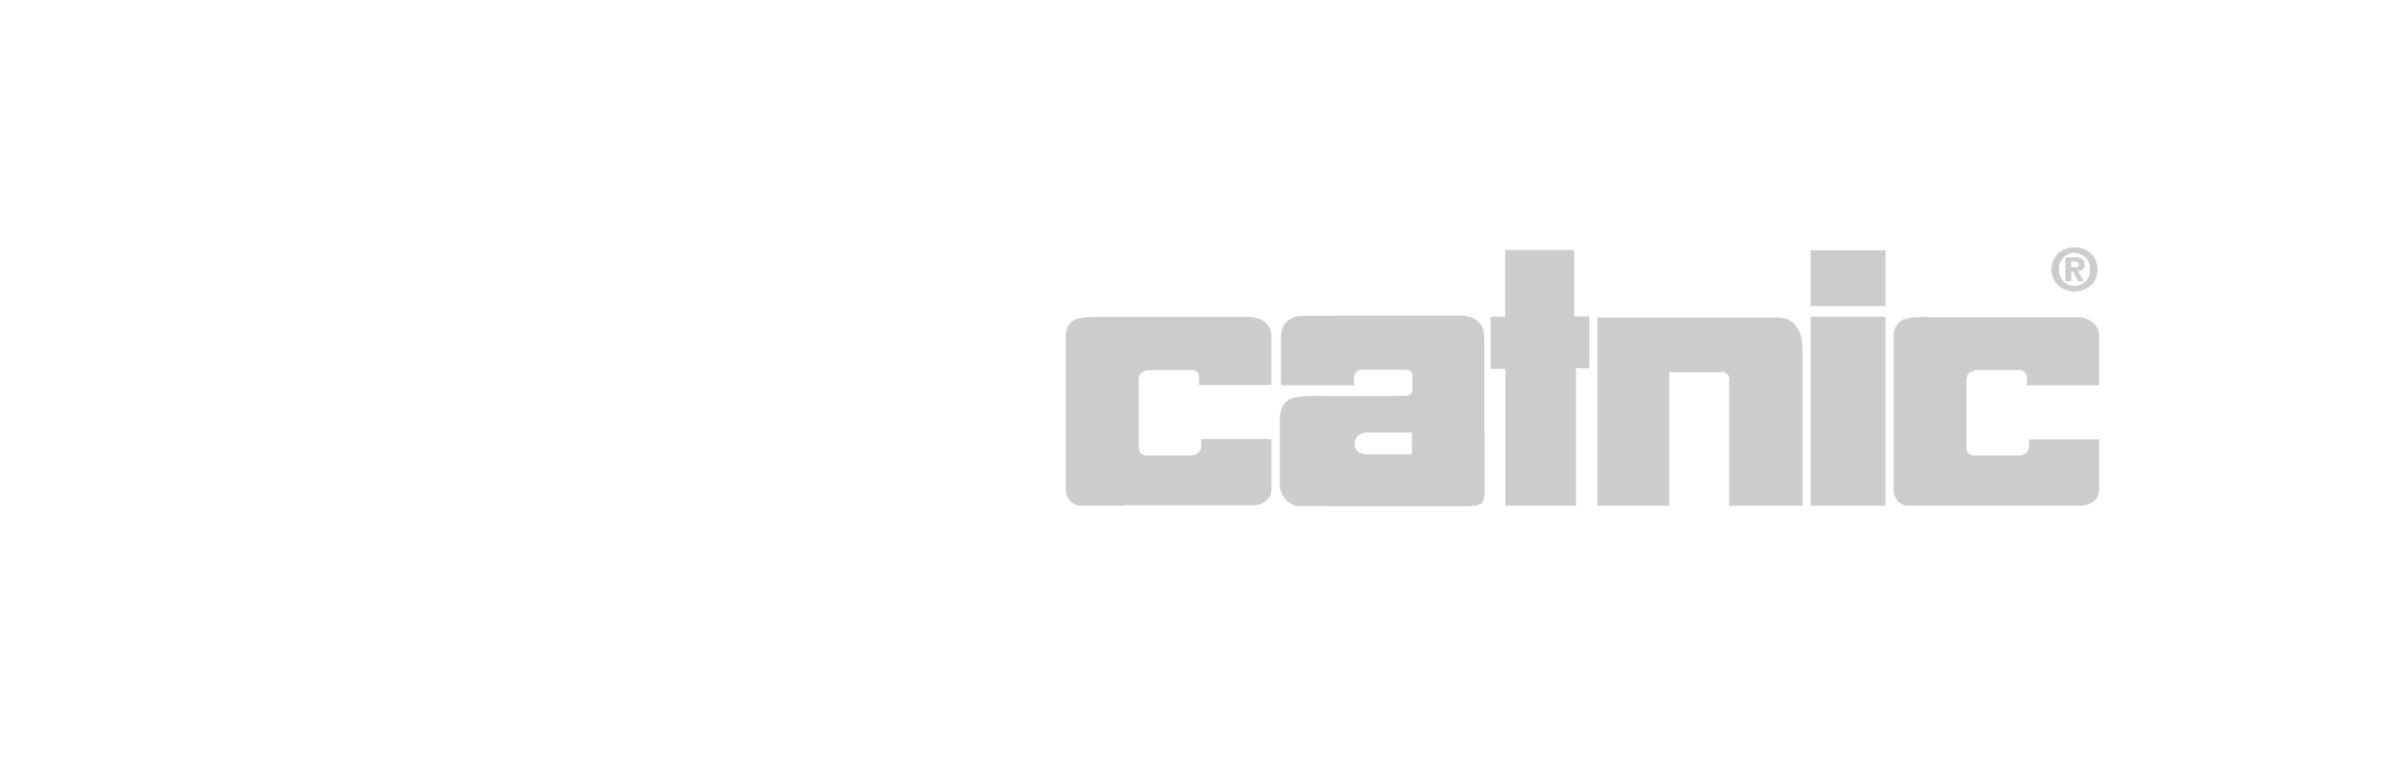 Catnic Lintels see second price increase in 2021 due to supply constraints